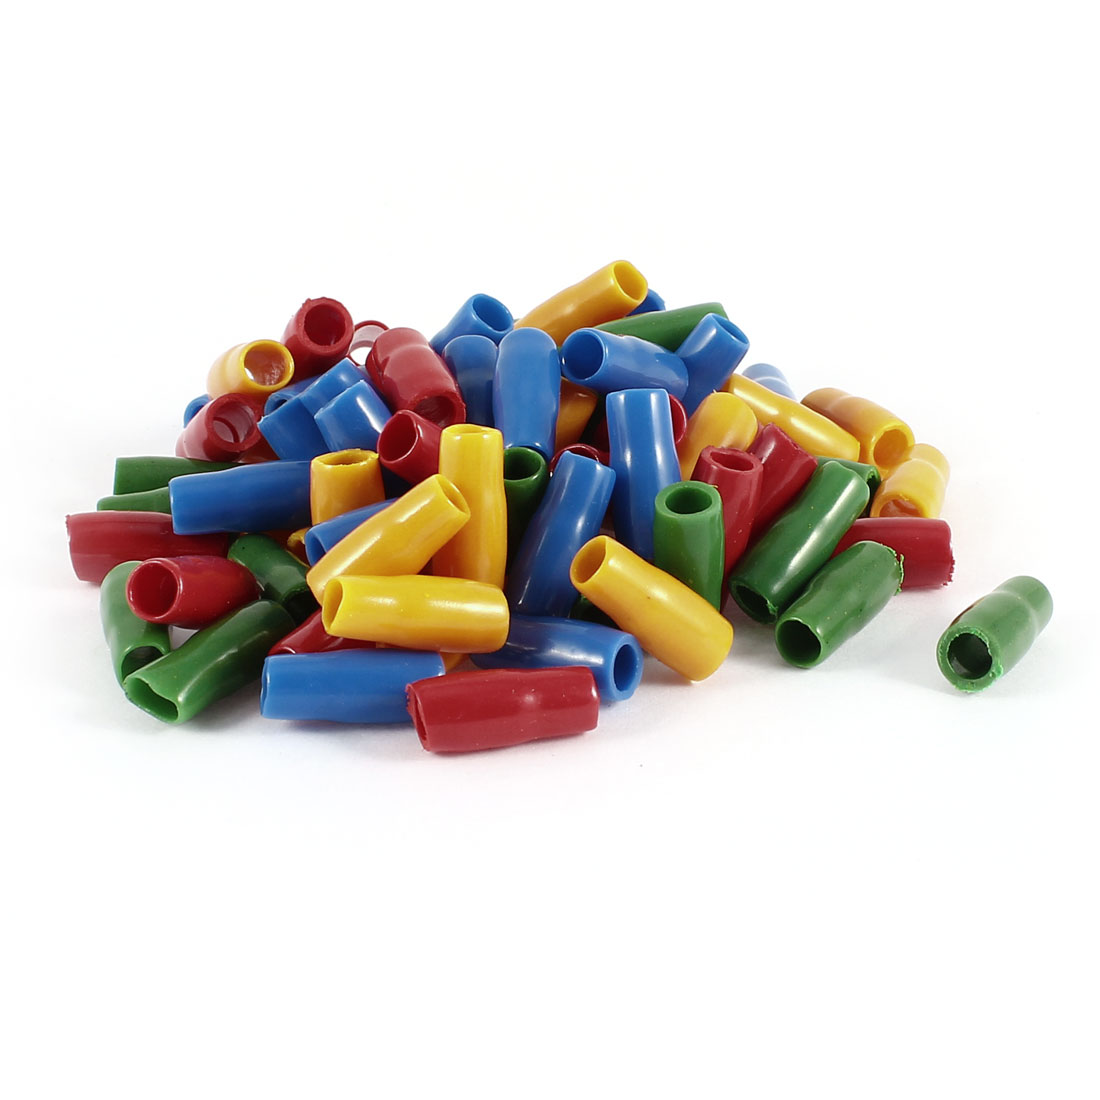 80 Pcs Soft PVC Wire V-5.5 6mm2 Crimp Terminal End Insulated Sleeves Cover Green Red Blue Orange